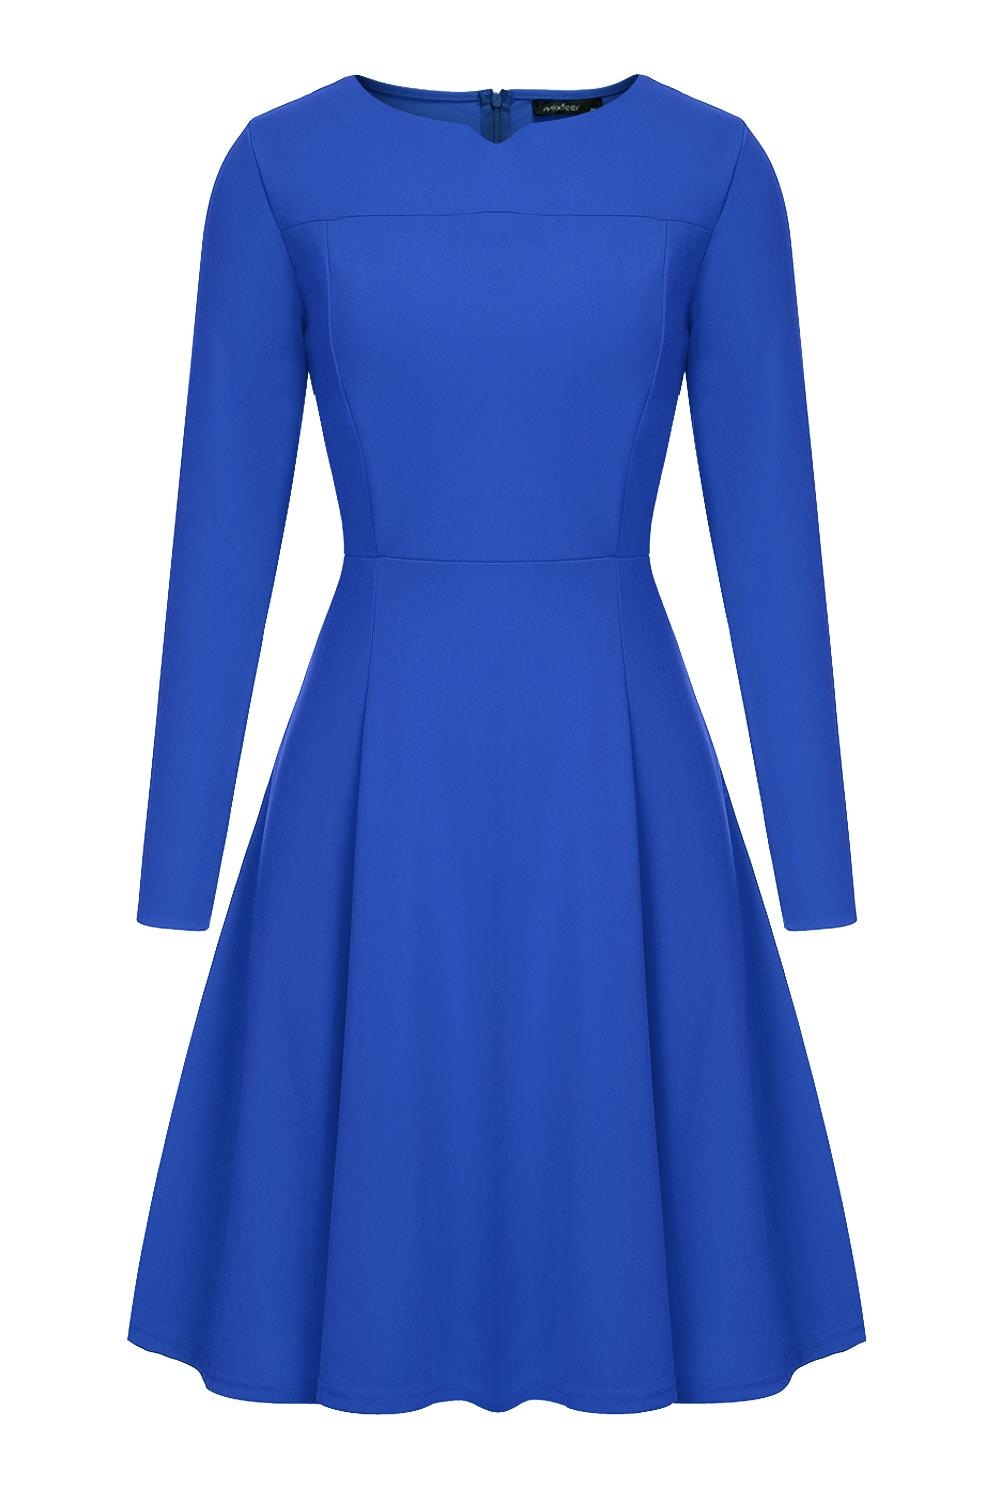 a2c7ba93966a0 Mixfeer Womens 1950s 60s Vintage A-line Dress Elegant Classy Office  Business Long Tea Midi Dress Dark Blue Casual Autumn Dress